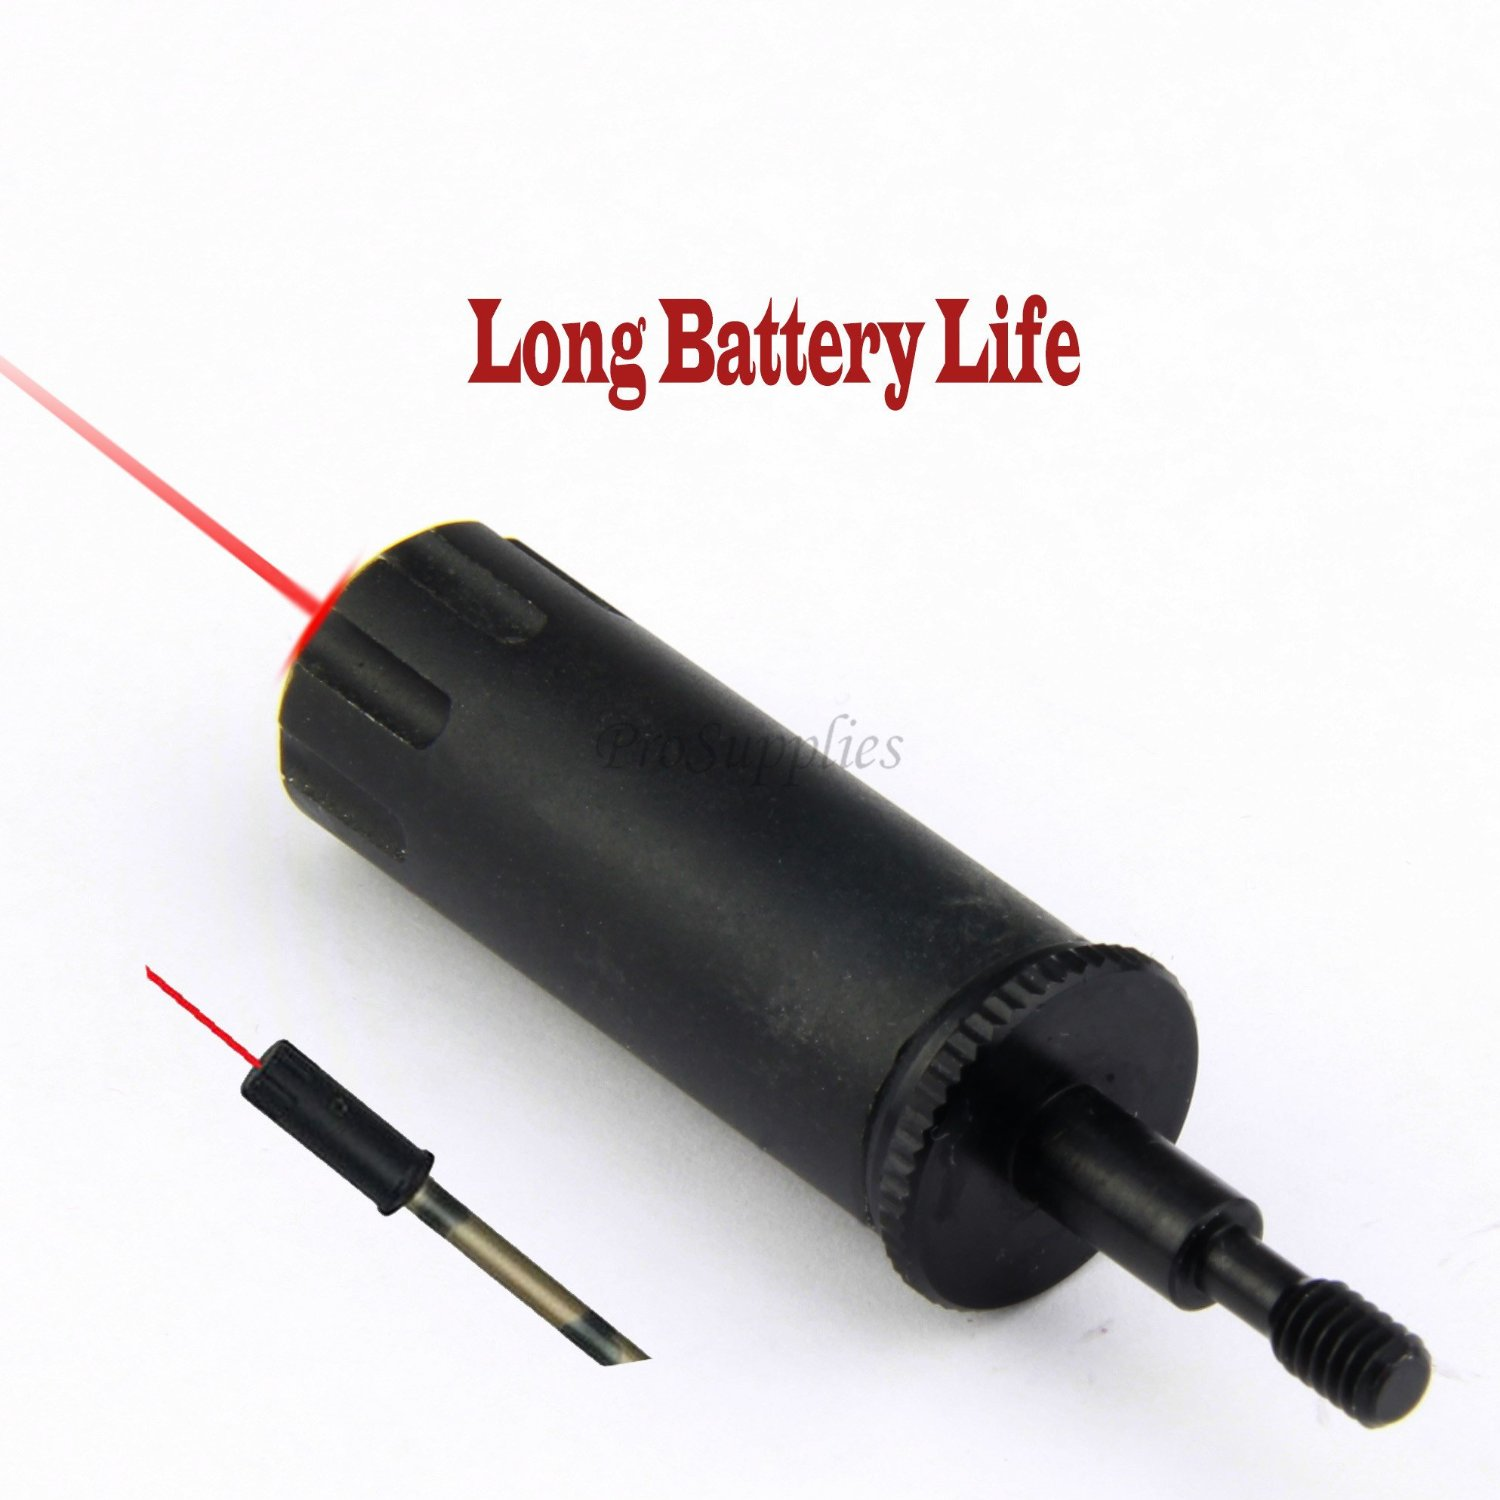 Archery Laser Sighting Tool Crossbow Bow Arrow Sight Bore Sighter Boresight UK